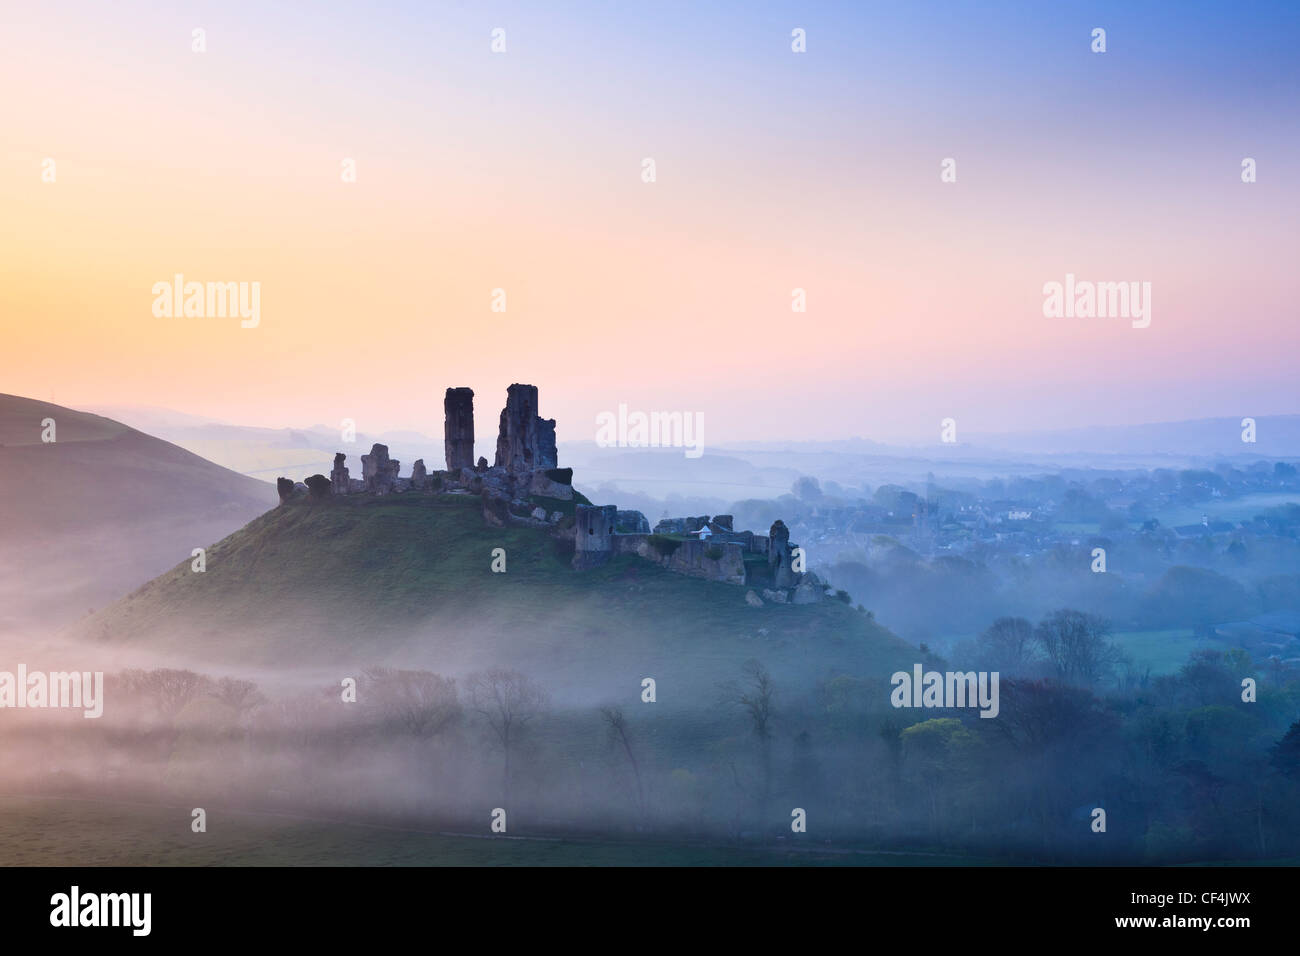 Corfe Castle, dating back to the 11th century, shrouded in mist at sunrise. Stock Photo